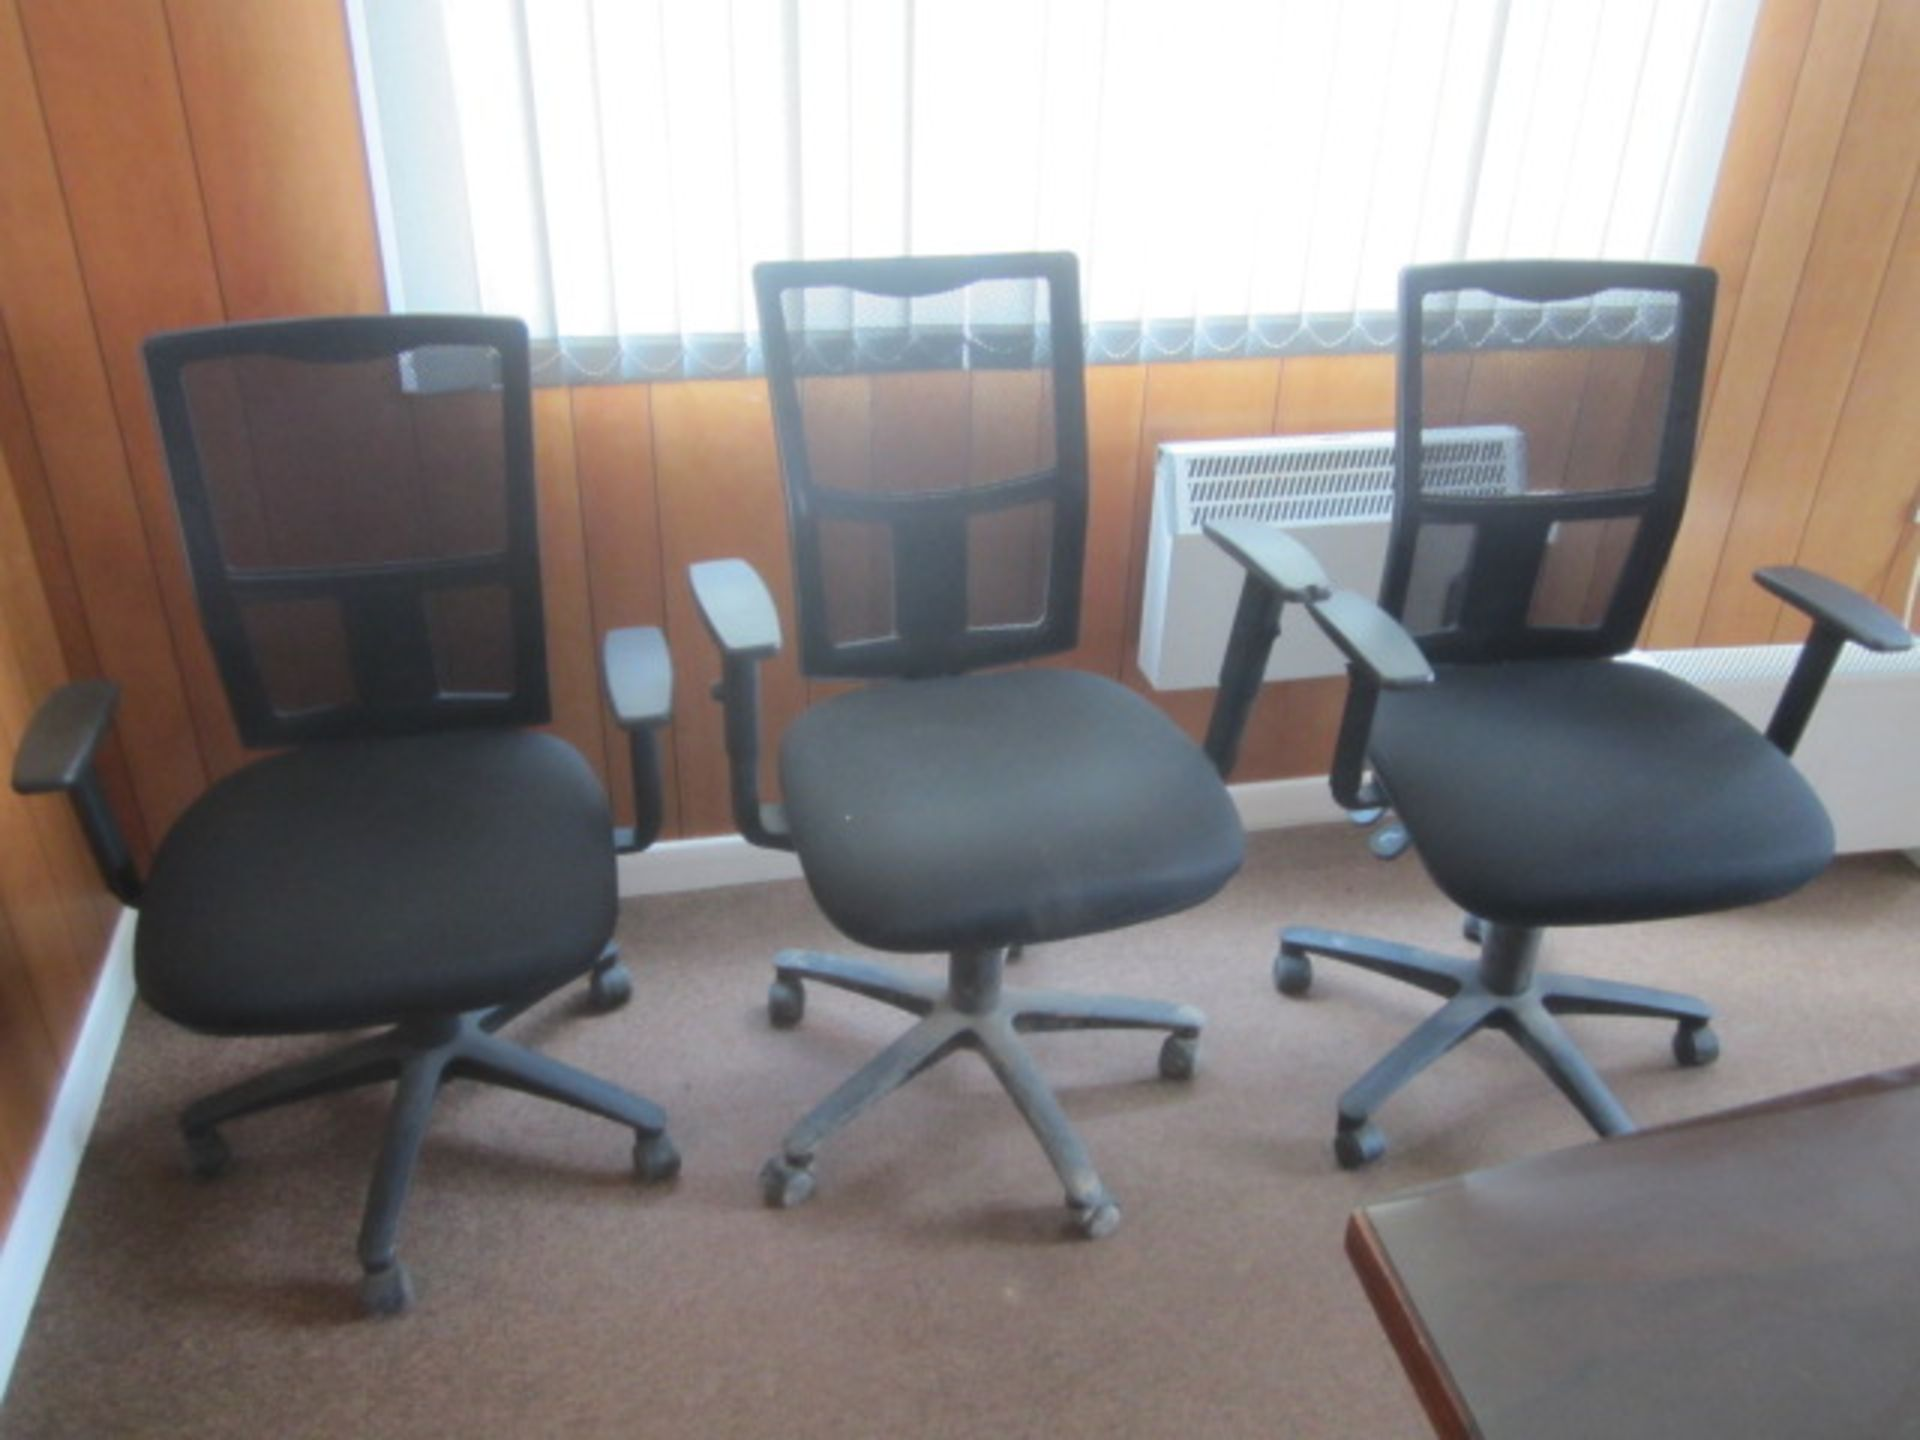 Three assorted cloth upholstered swivel office chairs, with mesh back